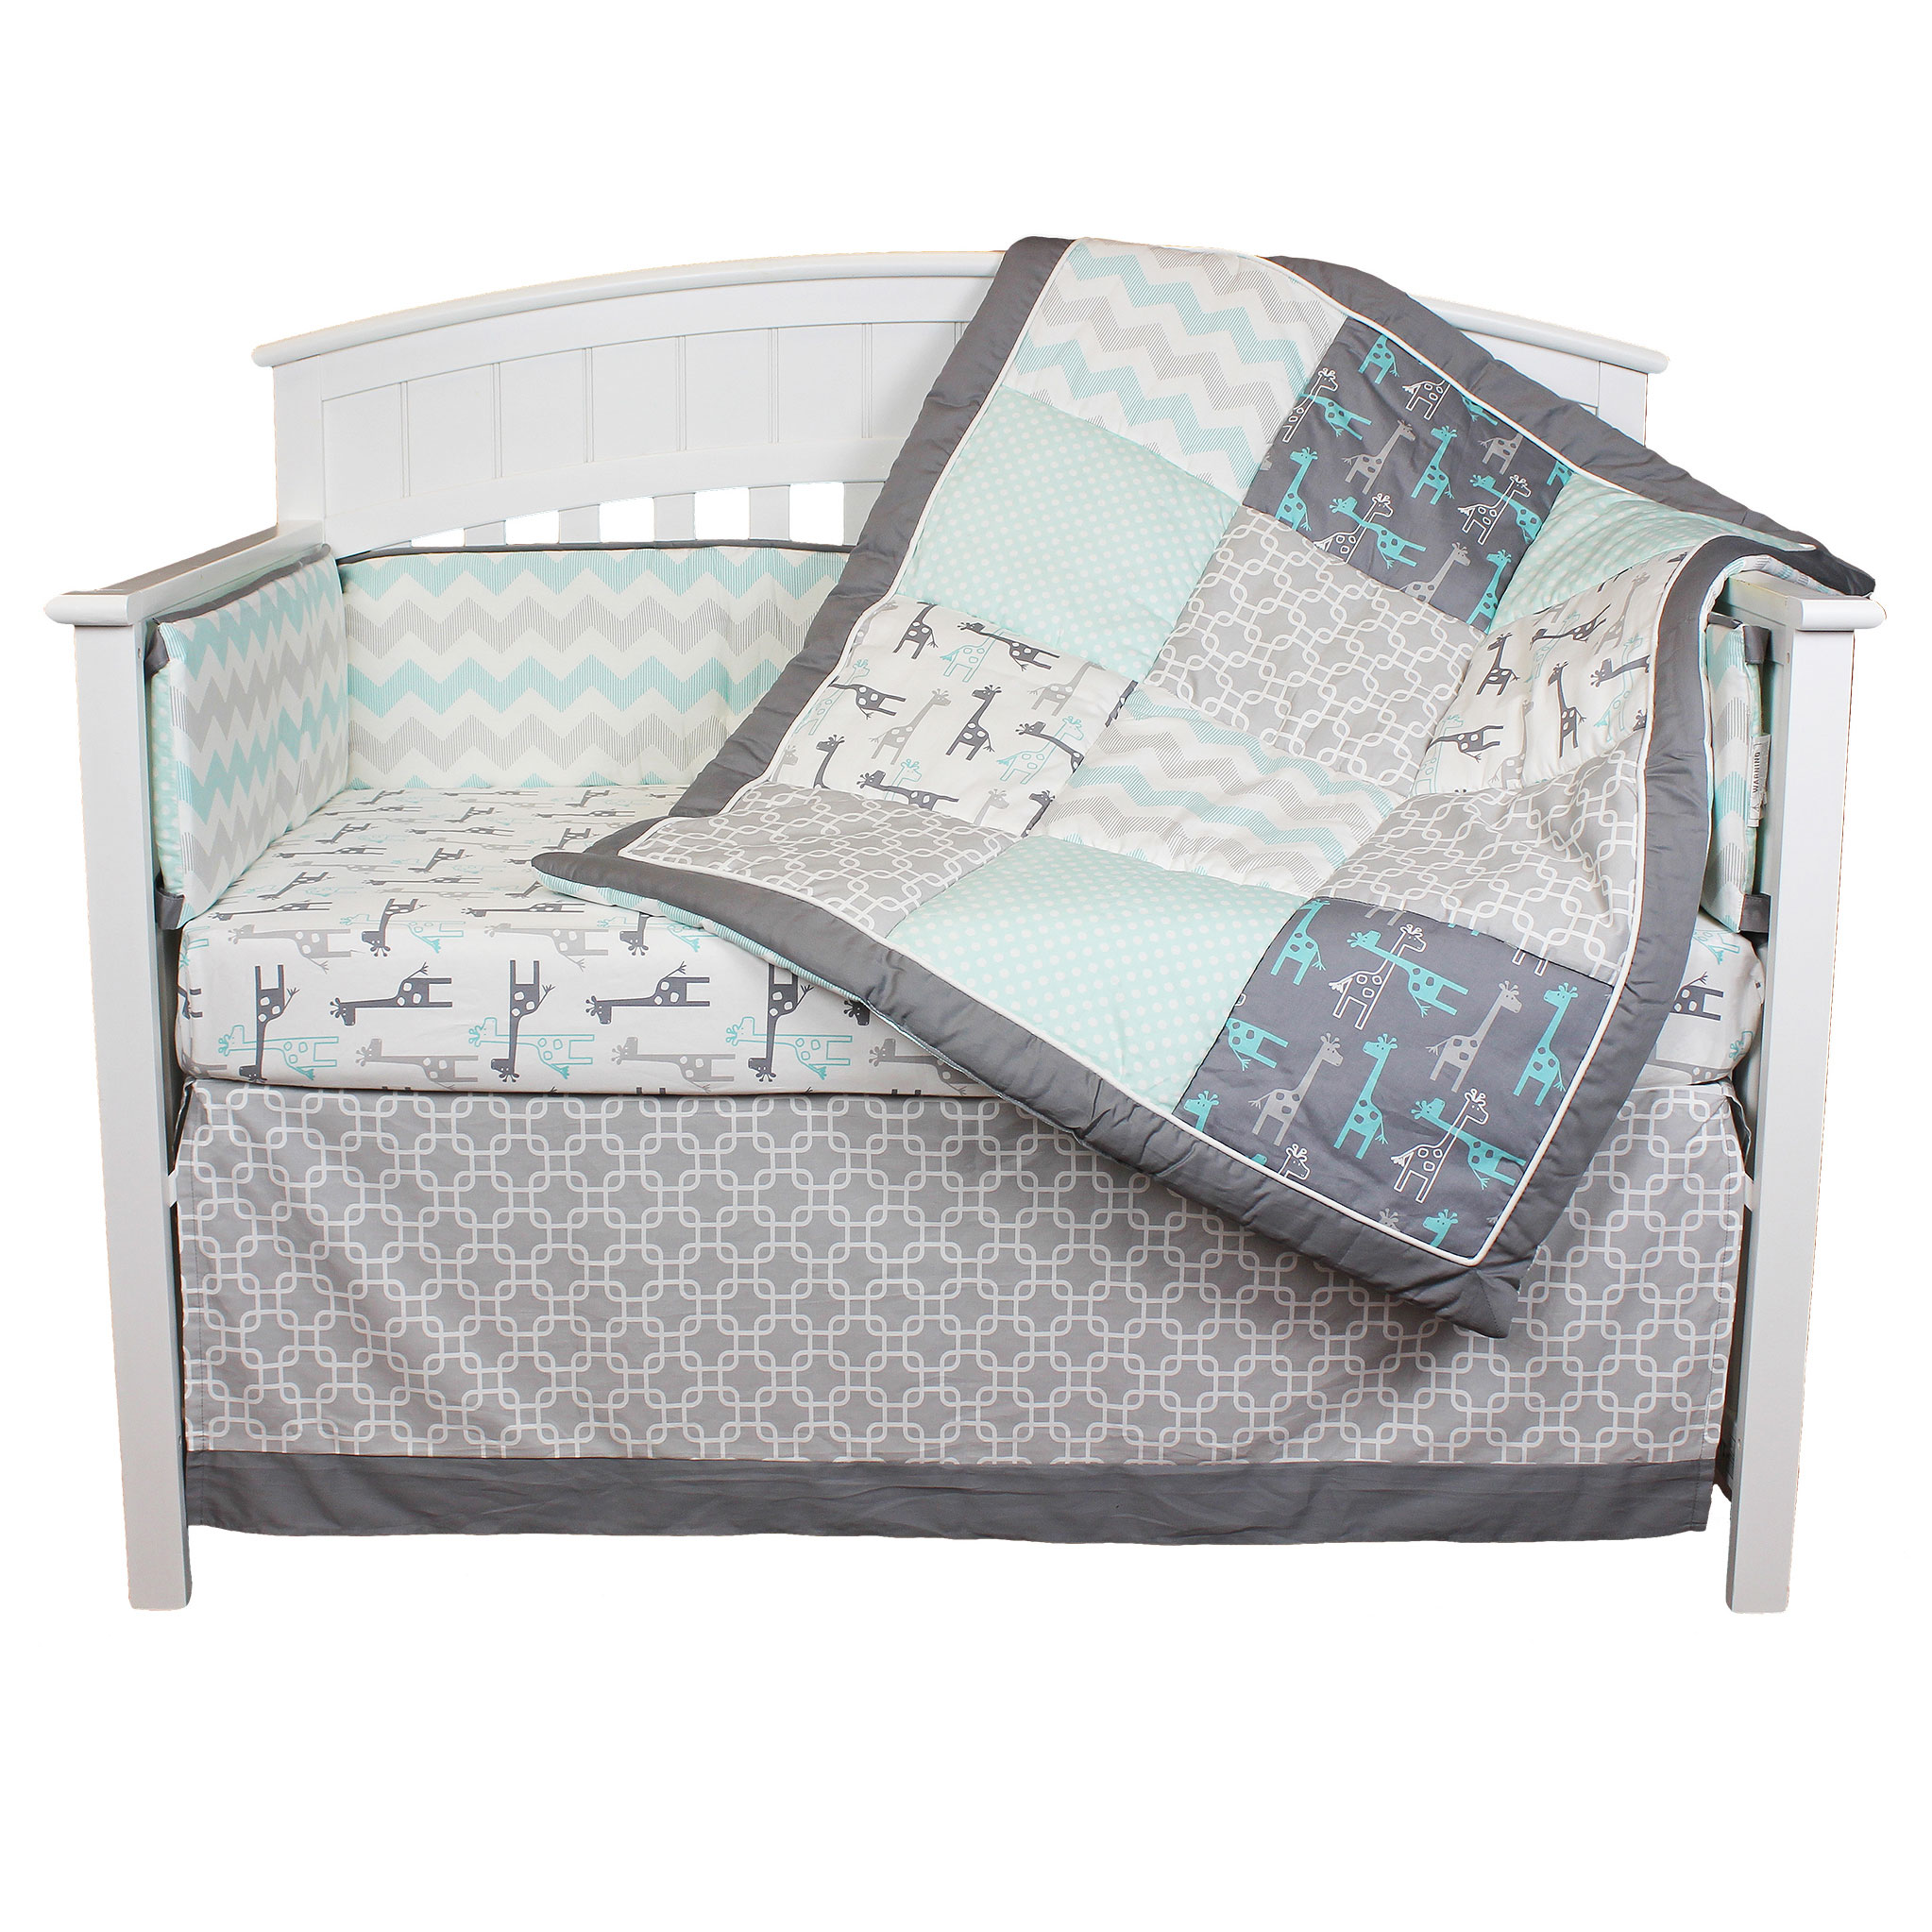 The Peanut Shell Crib Bedding Set - Grey and Aqua - Uptown Giraffe 5 Piece Baby Bedding Collection with Bumper